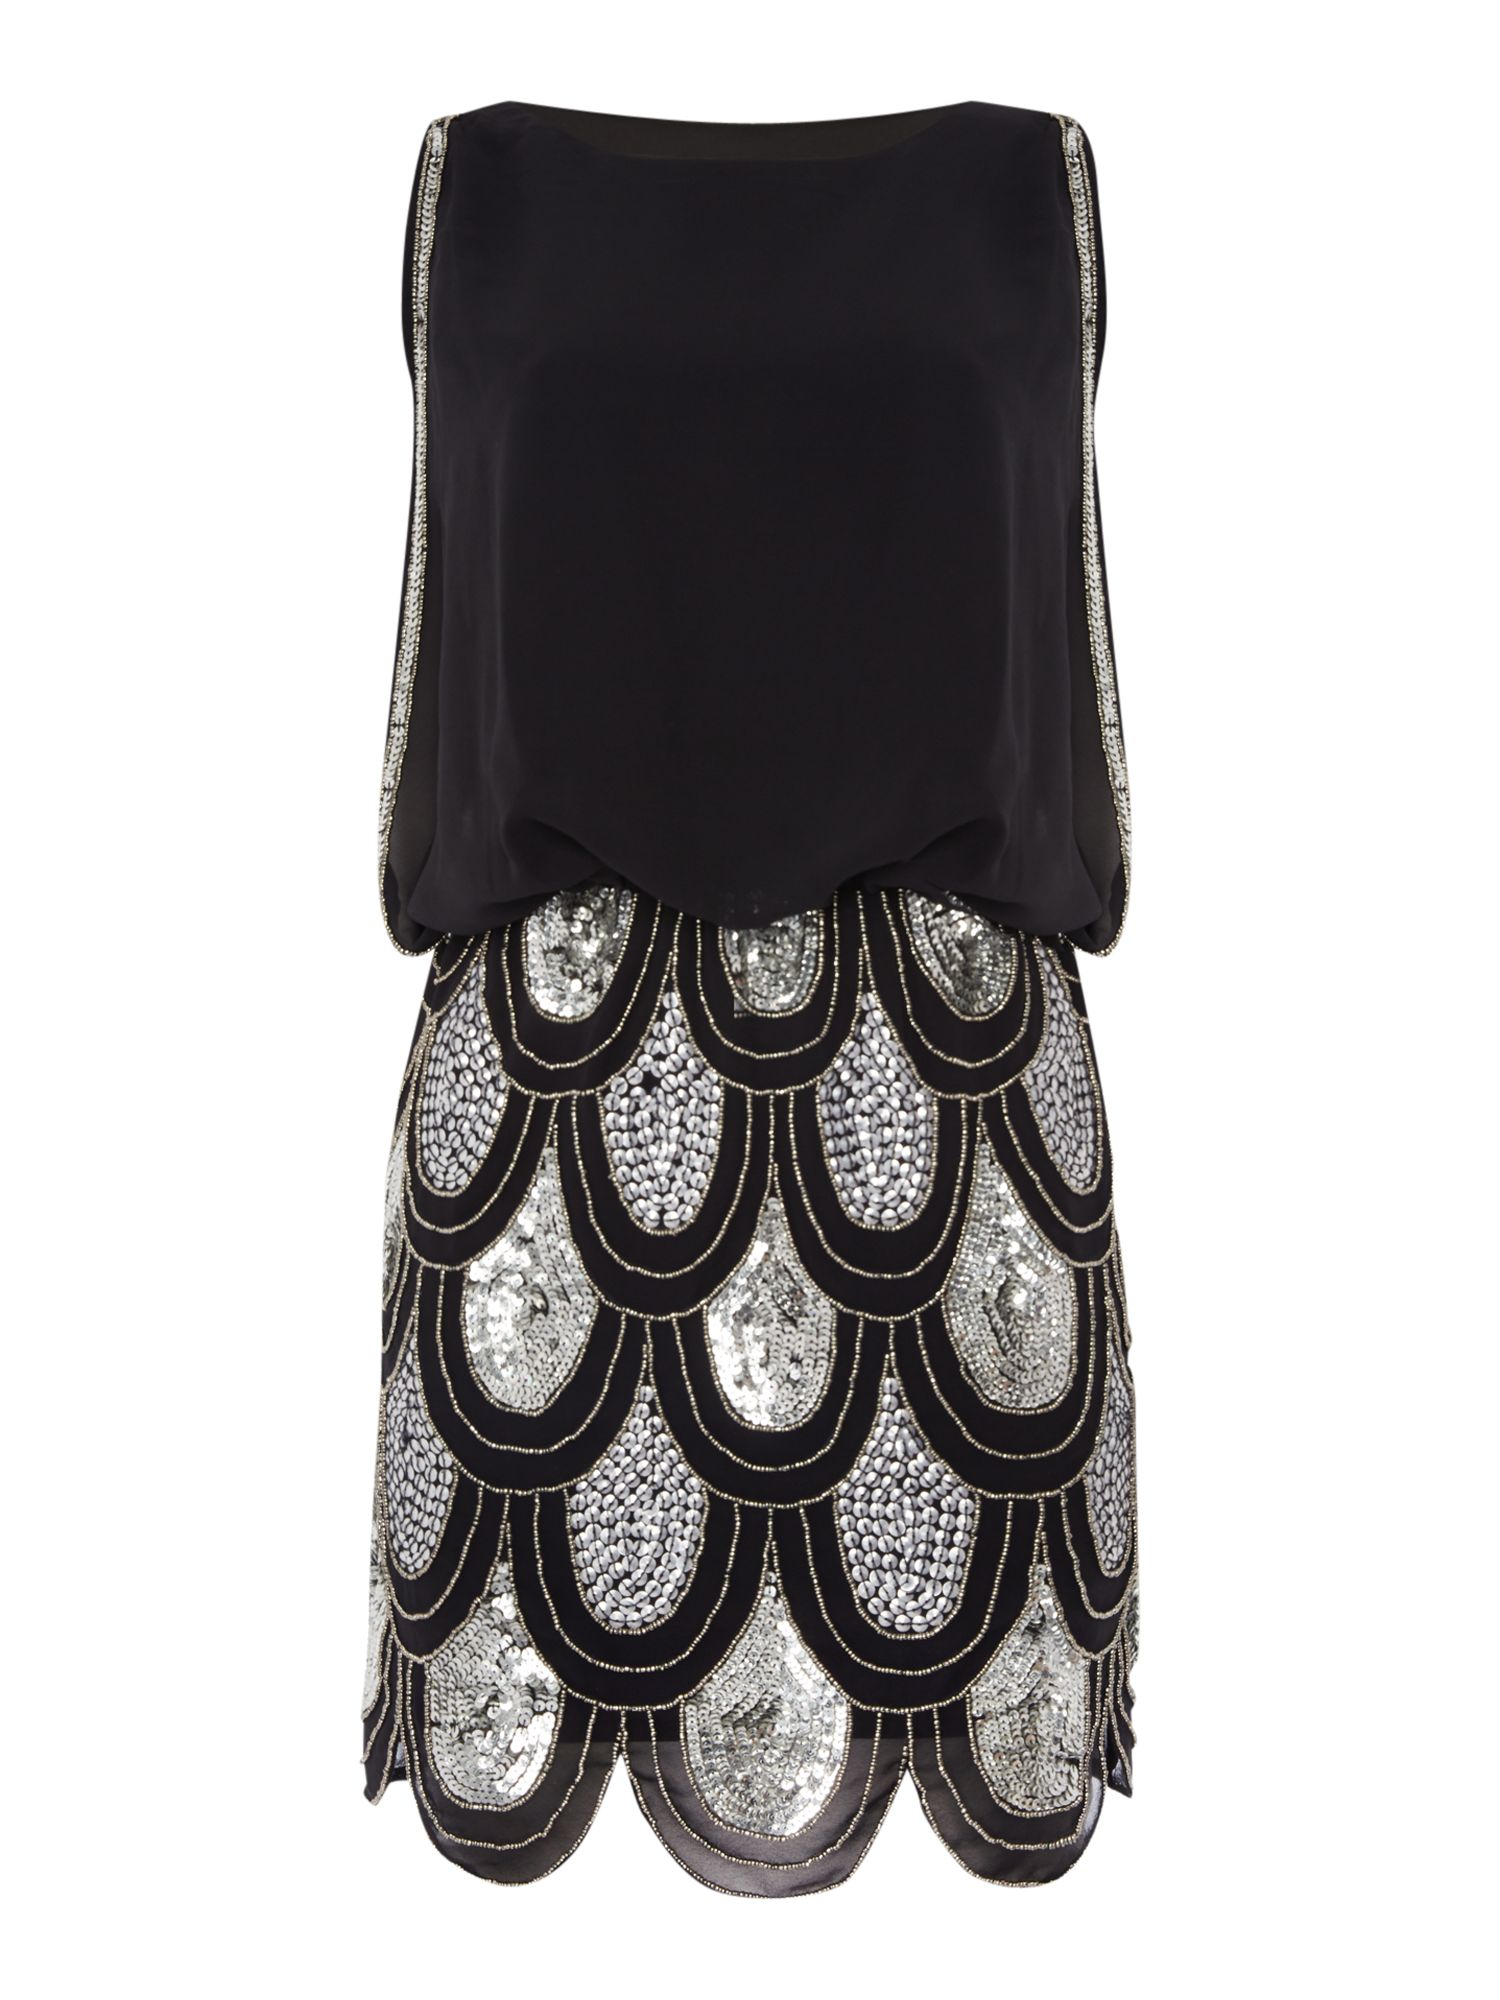 Lace and Beads Sleeveless Blouson Top Sequin Detail Dress, Black